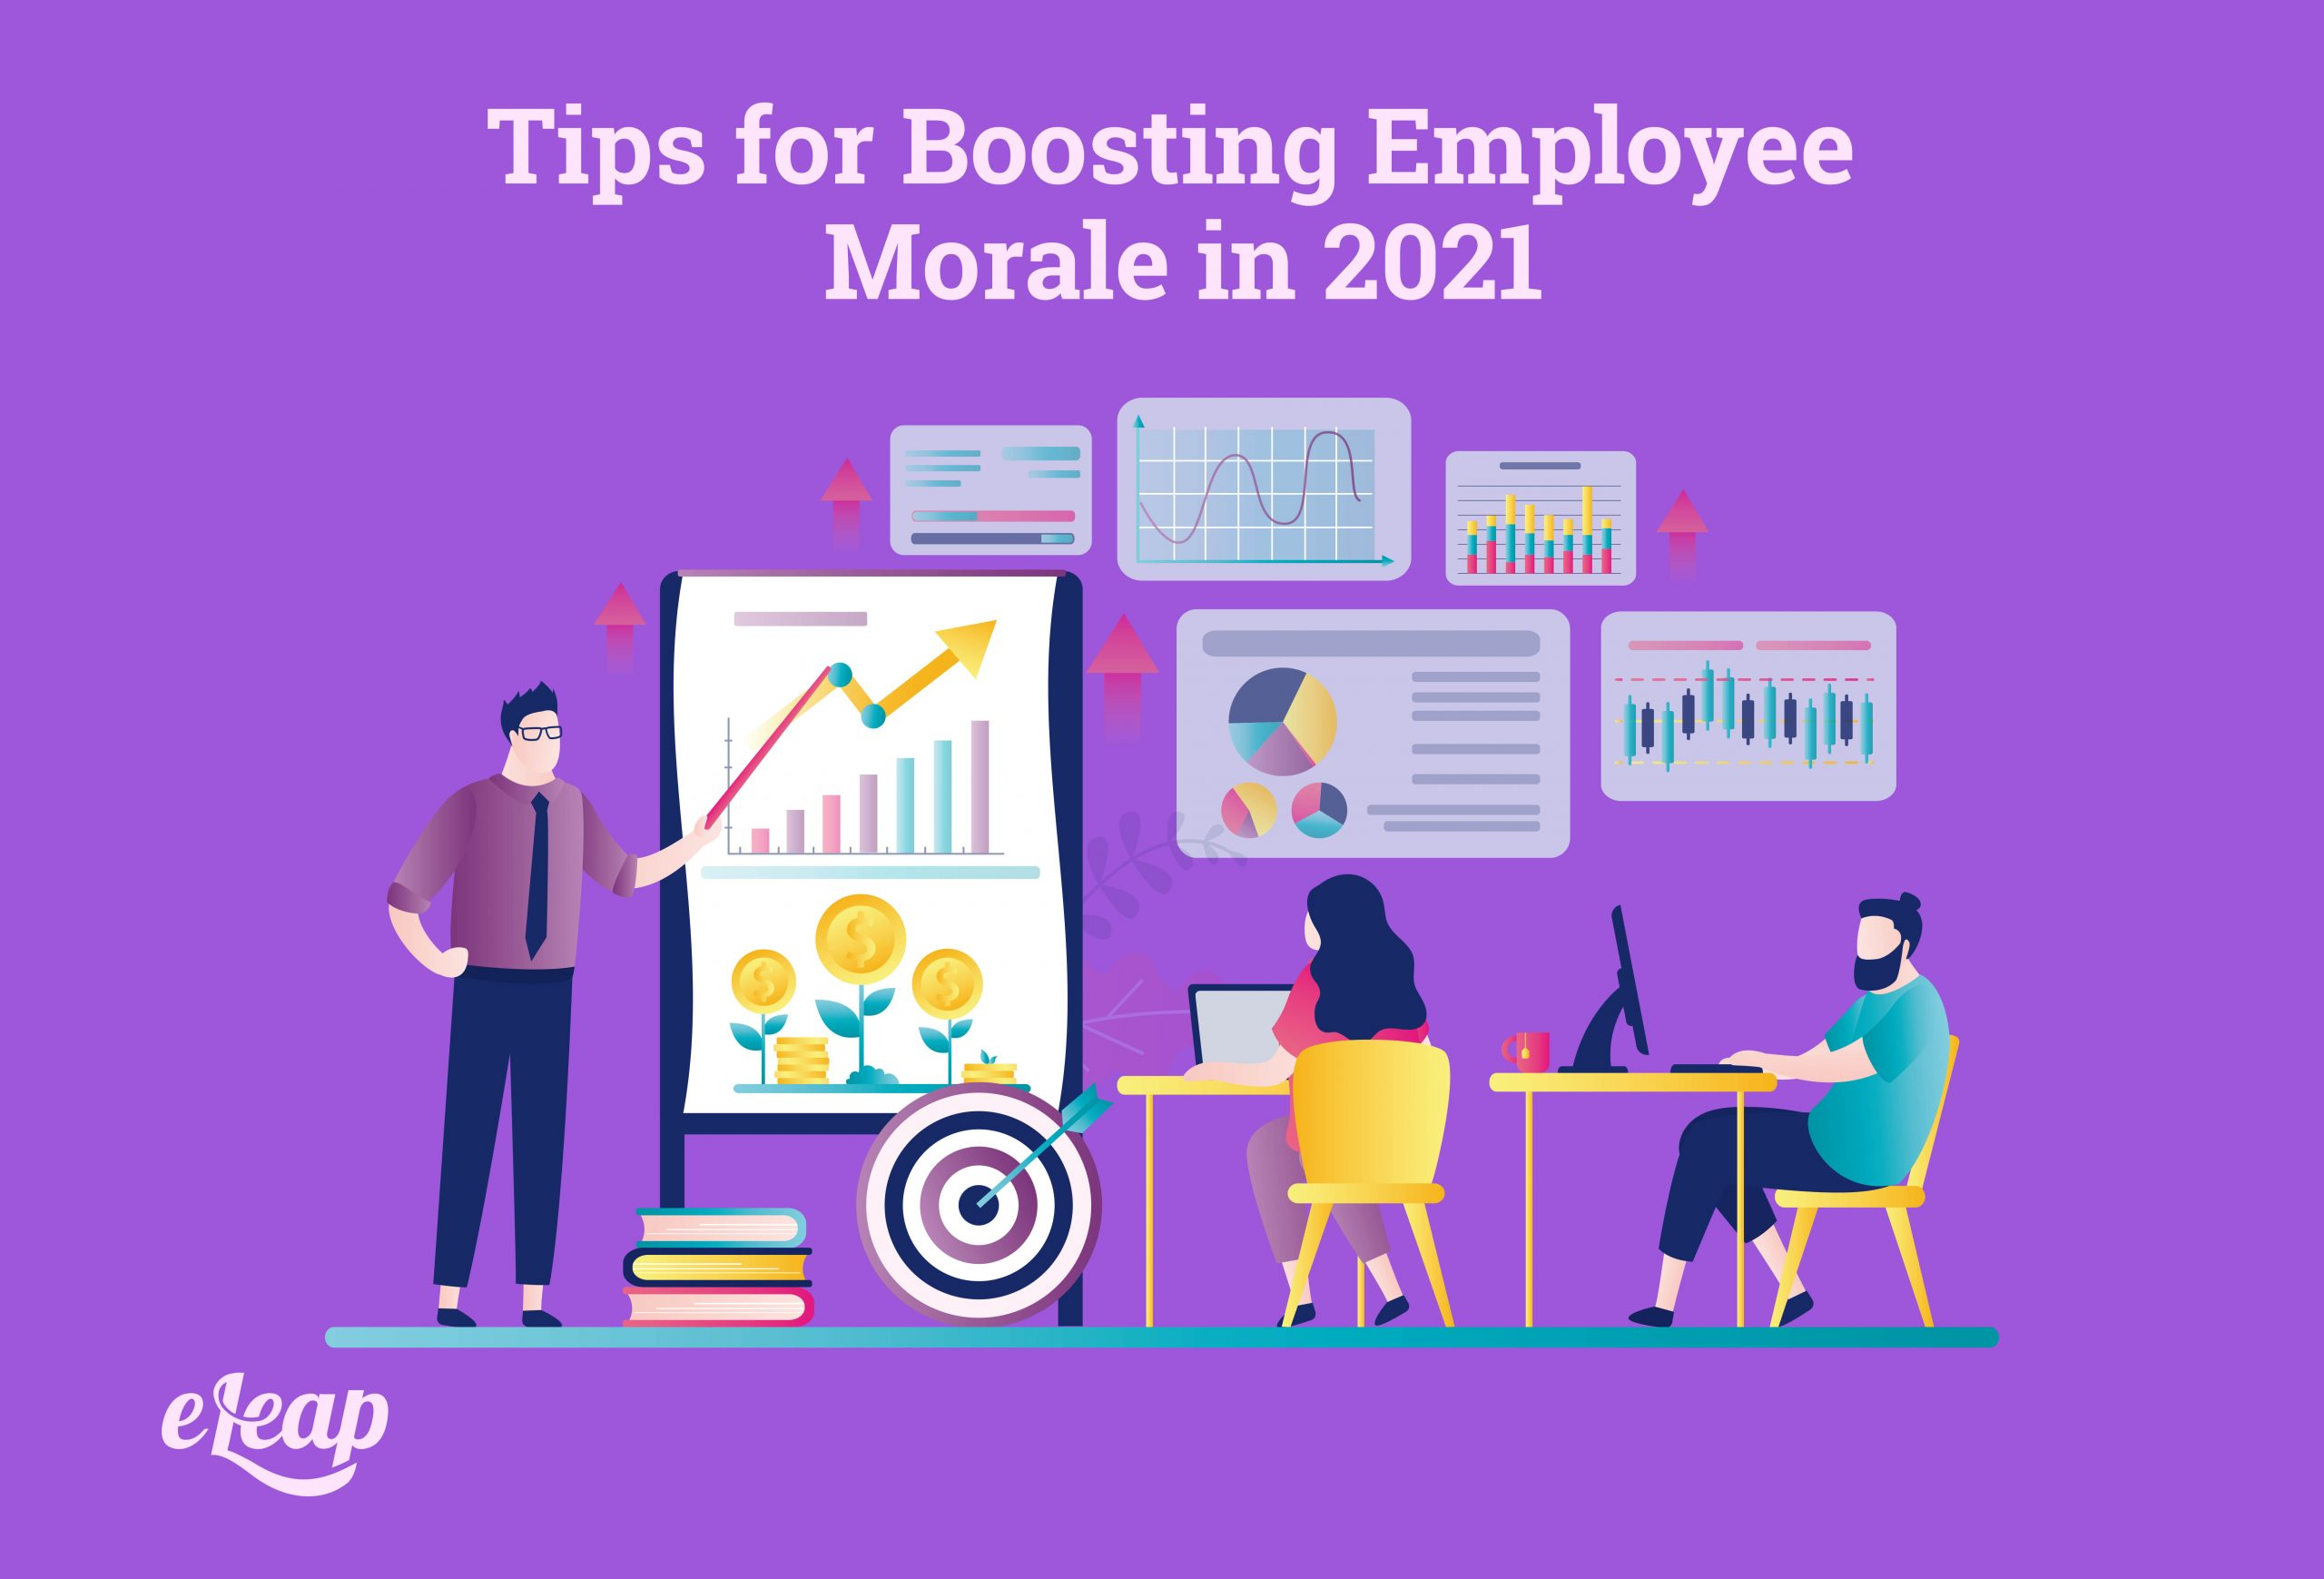 Tips for Boosting Employee Morale in 2021